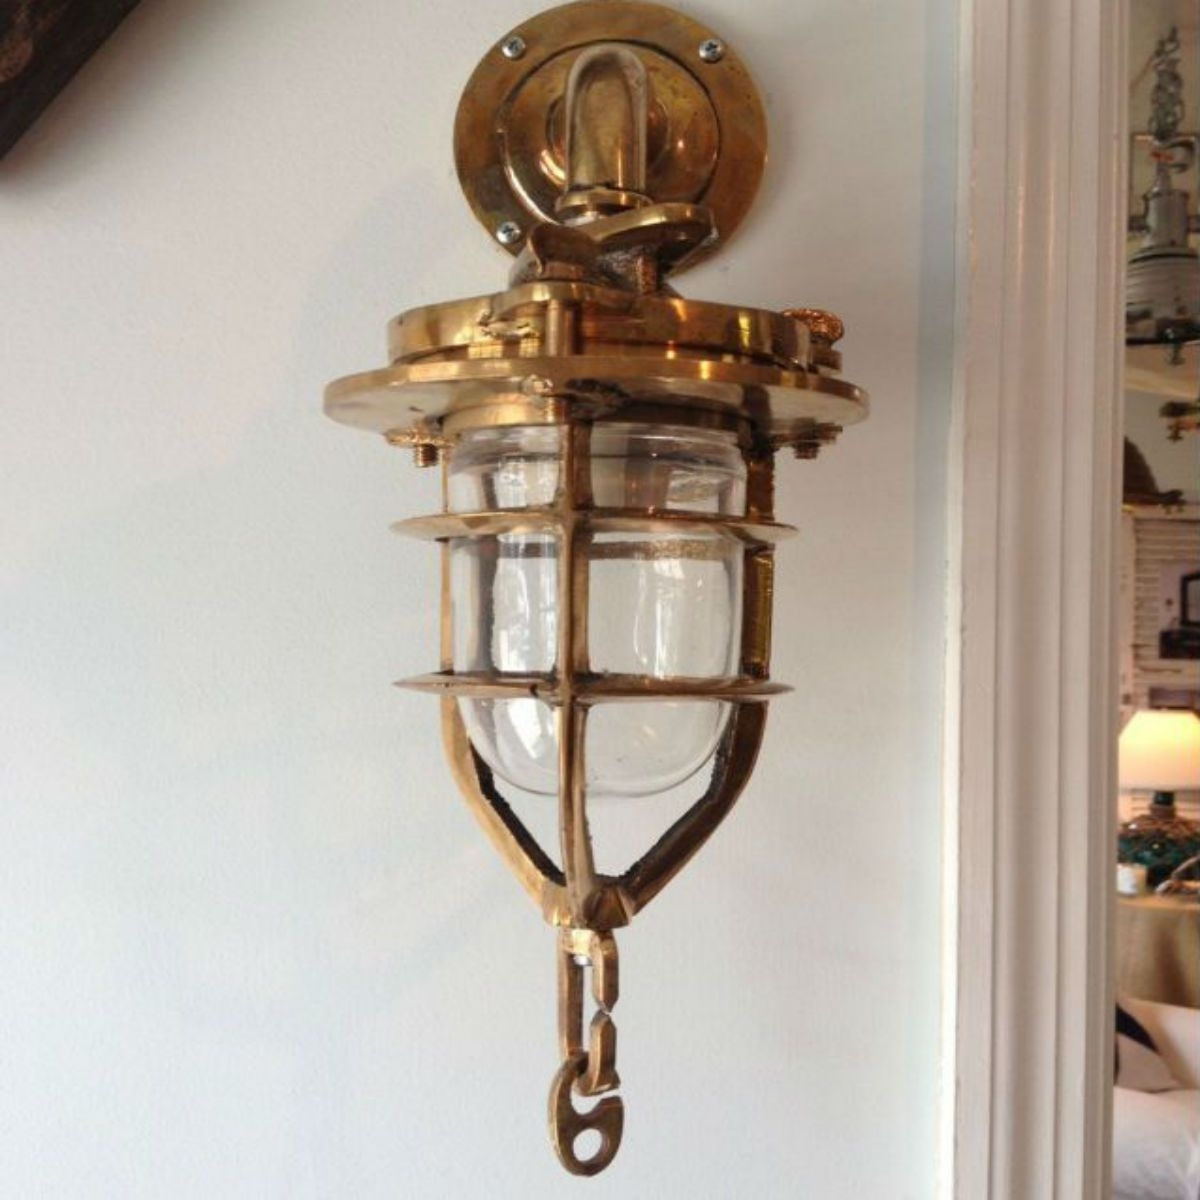 Trendy Outdoor Nautical Lanterns In Brass Convoy Sconce Light 2 Next To Mirror On Angled Wall Over Teak (View 19 of 20)